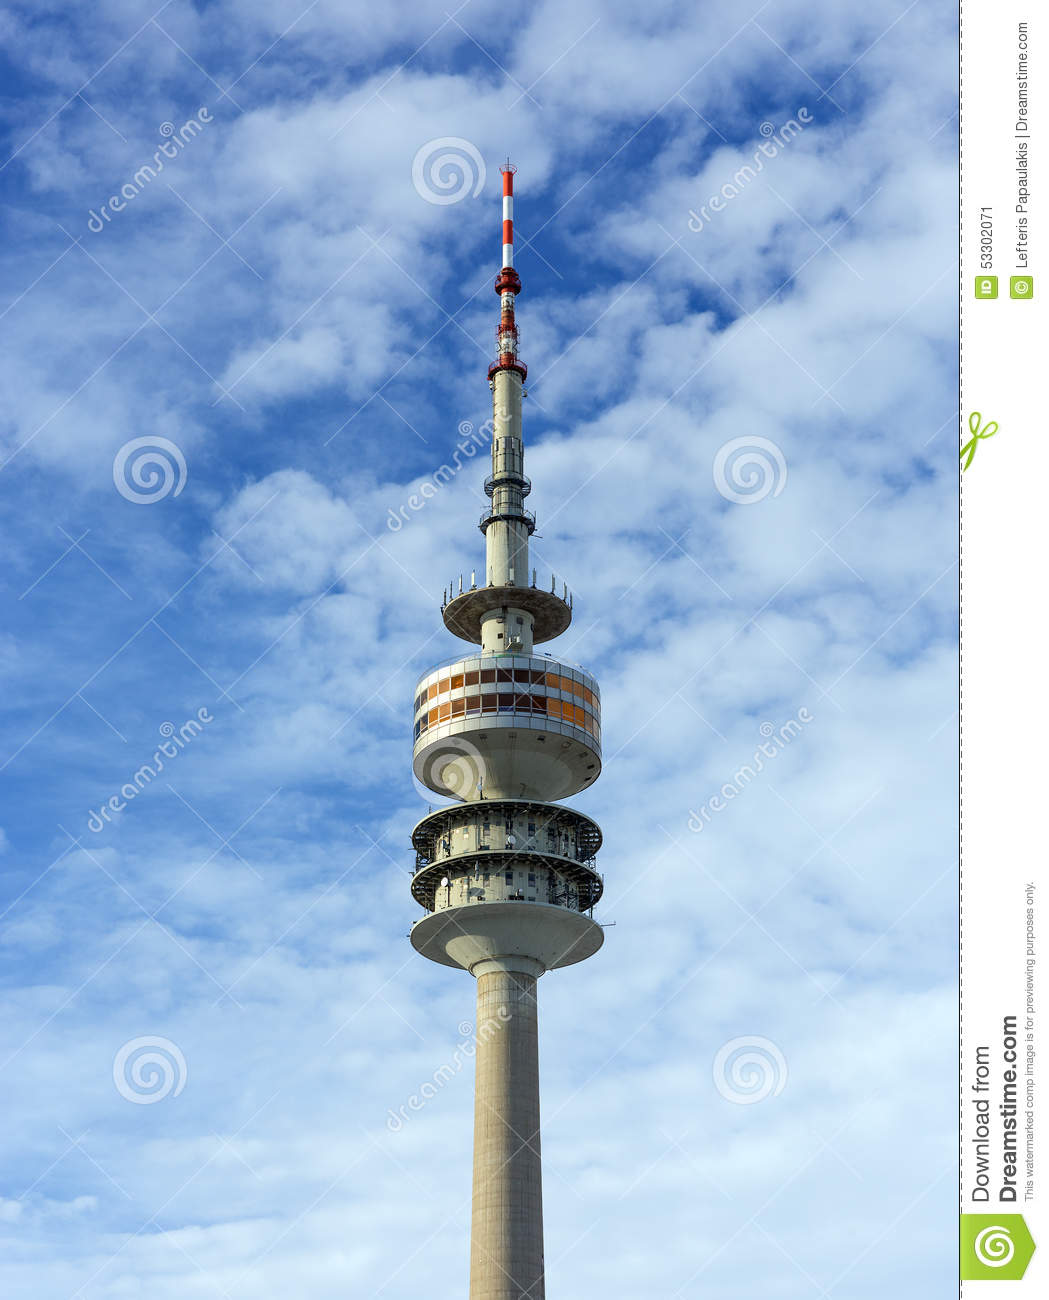 The Olympic Tower (Olympiaturm), Munich, Germany Stock Photo.